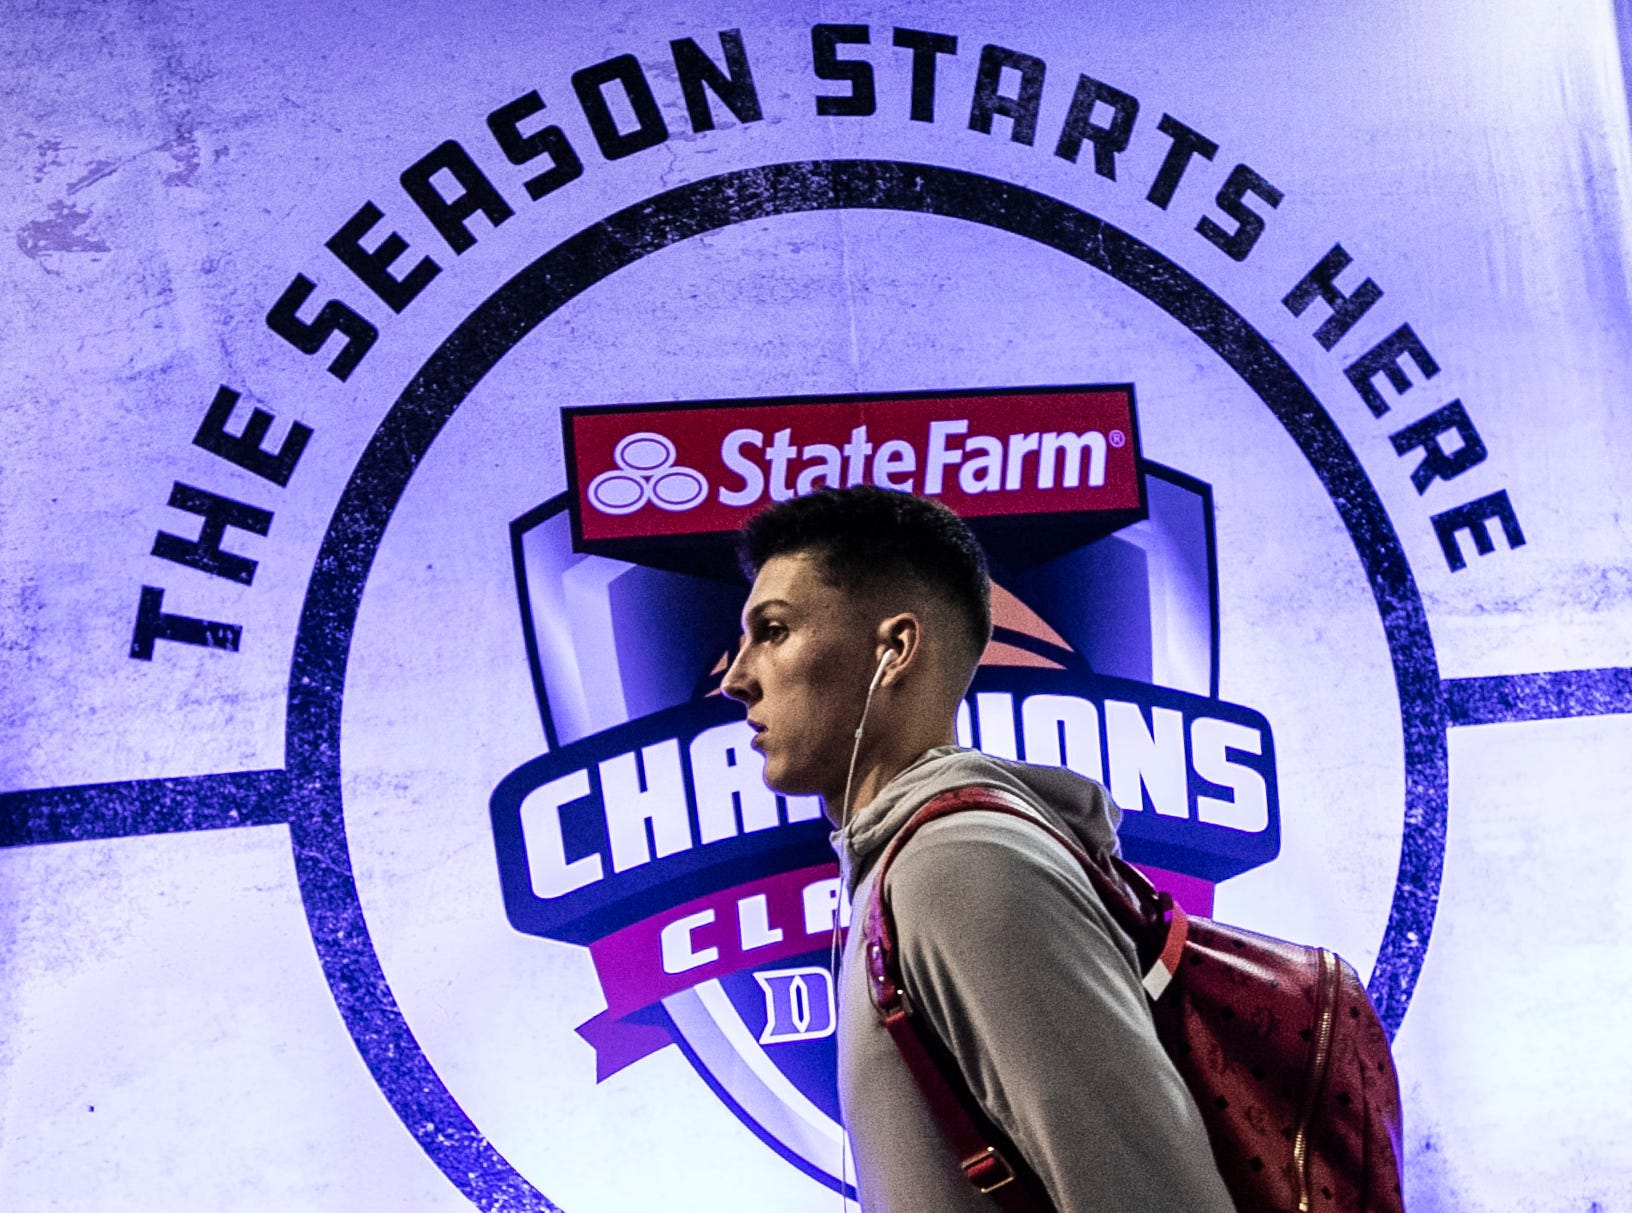 Kentucky player Tyler Herro arrives at Bankers Life Fieldhouse before the Wildcats' game against Duke in the Champions Classic Tuesday night in Indianapolis. Nov. 6, 2018